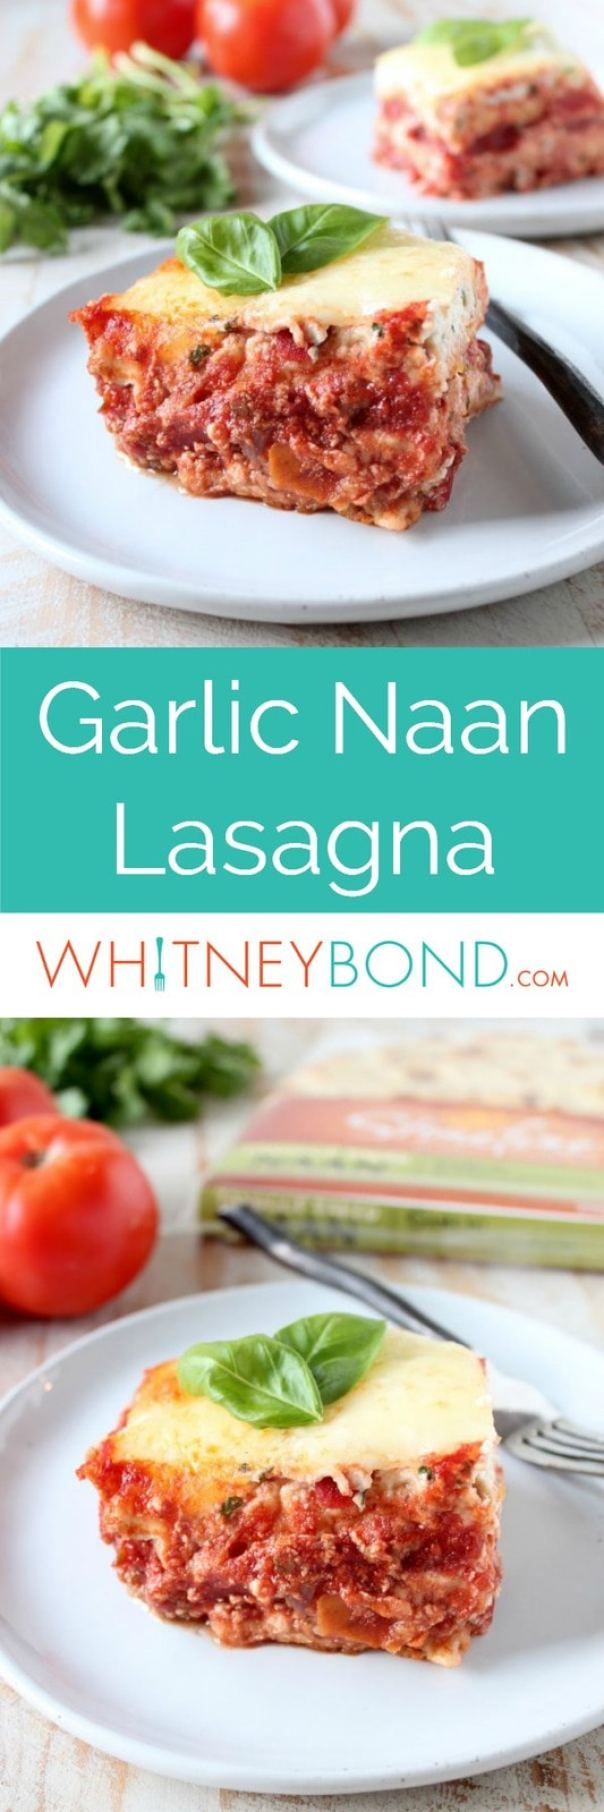 Layers of cheese, Italian sausage marinara and garlic naan make for a delicious twist on traditional lasagna, which I like to call la-naan-a!